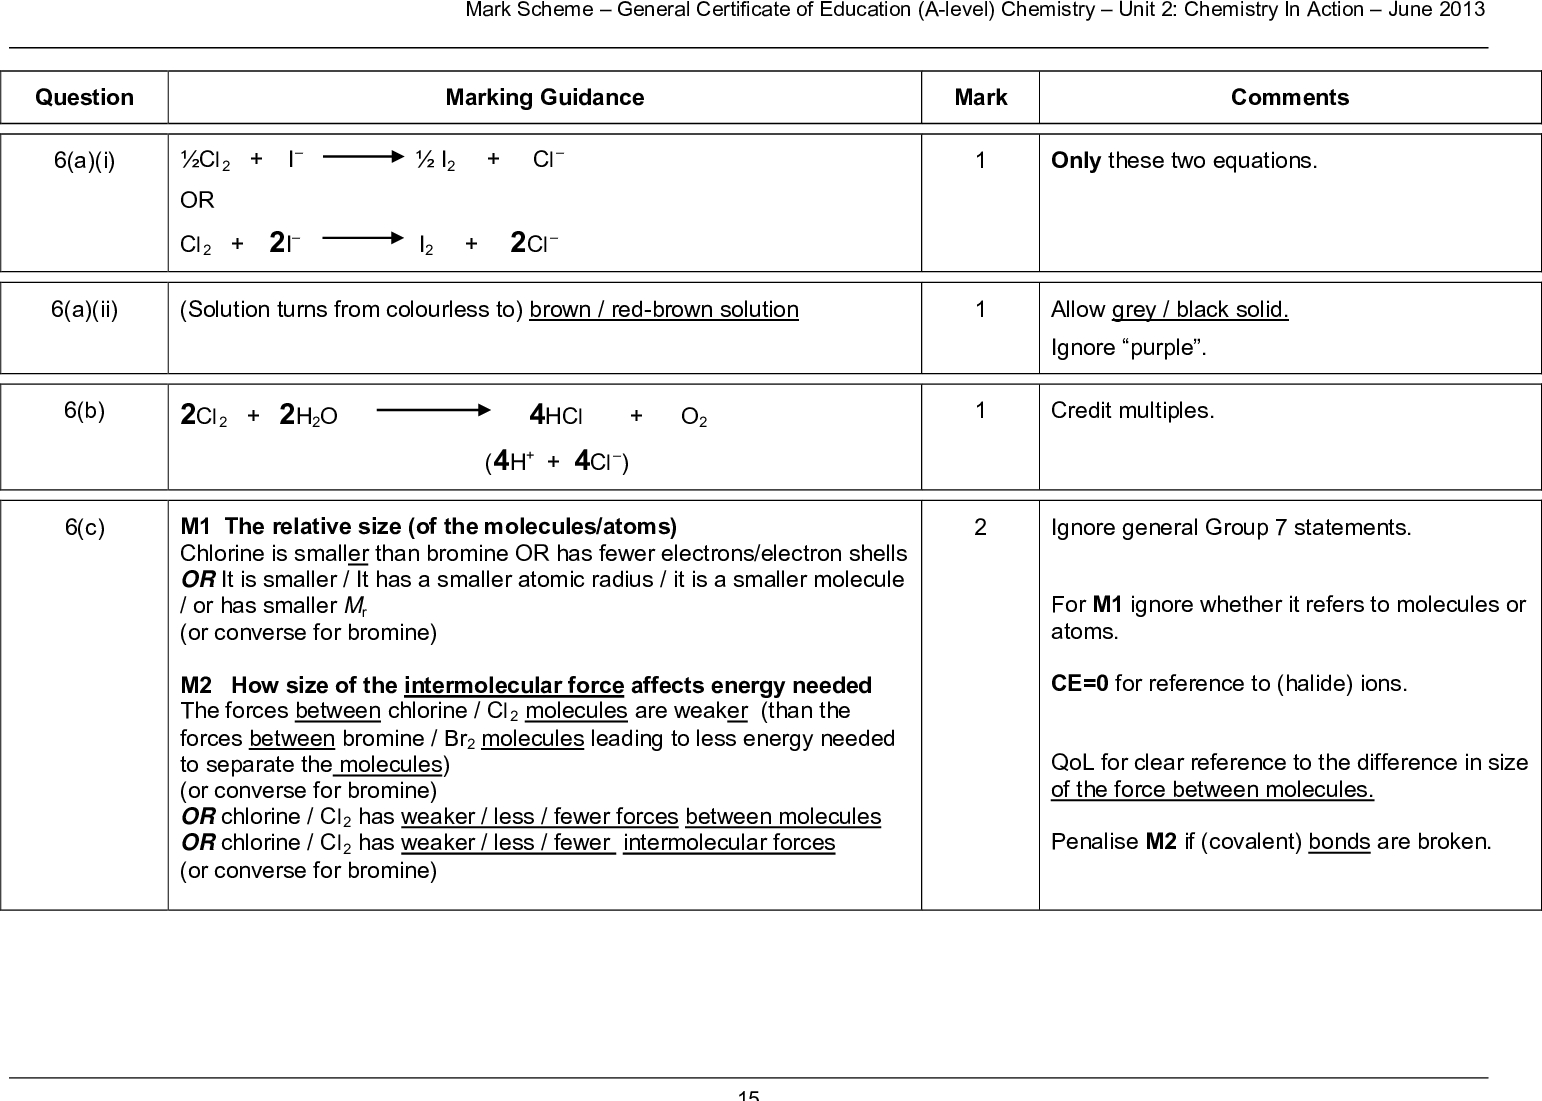 question a i mark scheme general certificate of education a level chemistry unit chemistry in action june marking guidance mark comments cl i i cl or cl i i cl only these two equations a ii solution turns from colourless to brown red brown solution b c cl h o hcl o h cl m the relative size of the molecules atoms chlorine is smaller than bromine or has fewer electrons electron shells or it is smaller it has a smaller atomic radius it is a smaller molecule or has smaller mr or converse for bromine m how size of the intermolecular force affects energy needed the forces between chlorine cl molecules are weaker than the forces between bromine br molecules leading to less energy needed to separate the molecules or converse for bromine or chlorine cl has weaker less fewer forces between molecules or chlorine cl has weaker less fewer intermolecular forces or converse for bromine allow grey black solid ignore purple credit multiples ignore general group statements for m ignore whether it refers to molecules or atoms ce for reference to halide ions qol for clear reference to the difference in size of the force between molecules penalise m if covalent bonds are broken